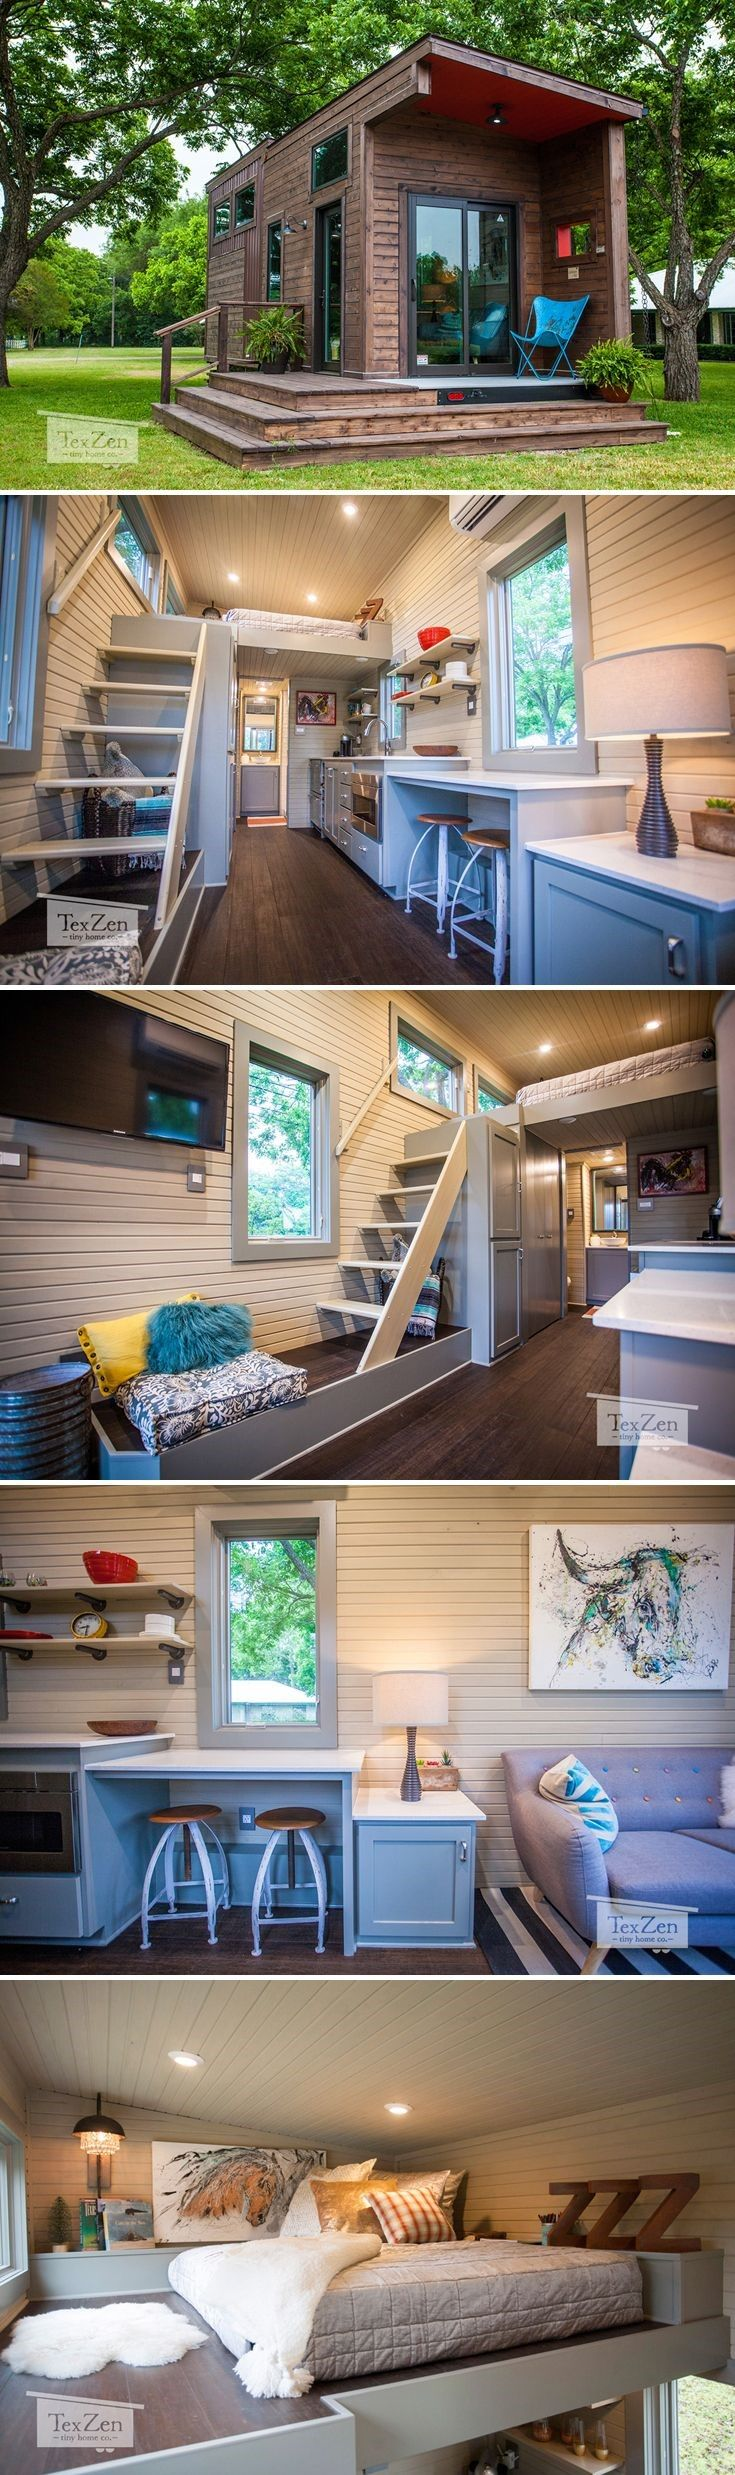 Container House - From Austin, Texas-based TexZen Tiny Home Co. is the Single Loft tiny house. The rustic modern house has a covered patio and bright, spacious interior. - Who Else Wants Simple Step-By-Step Plans To Design And Build A Container Home From Scratch?